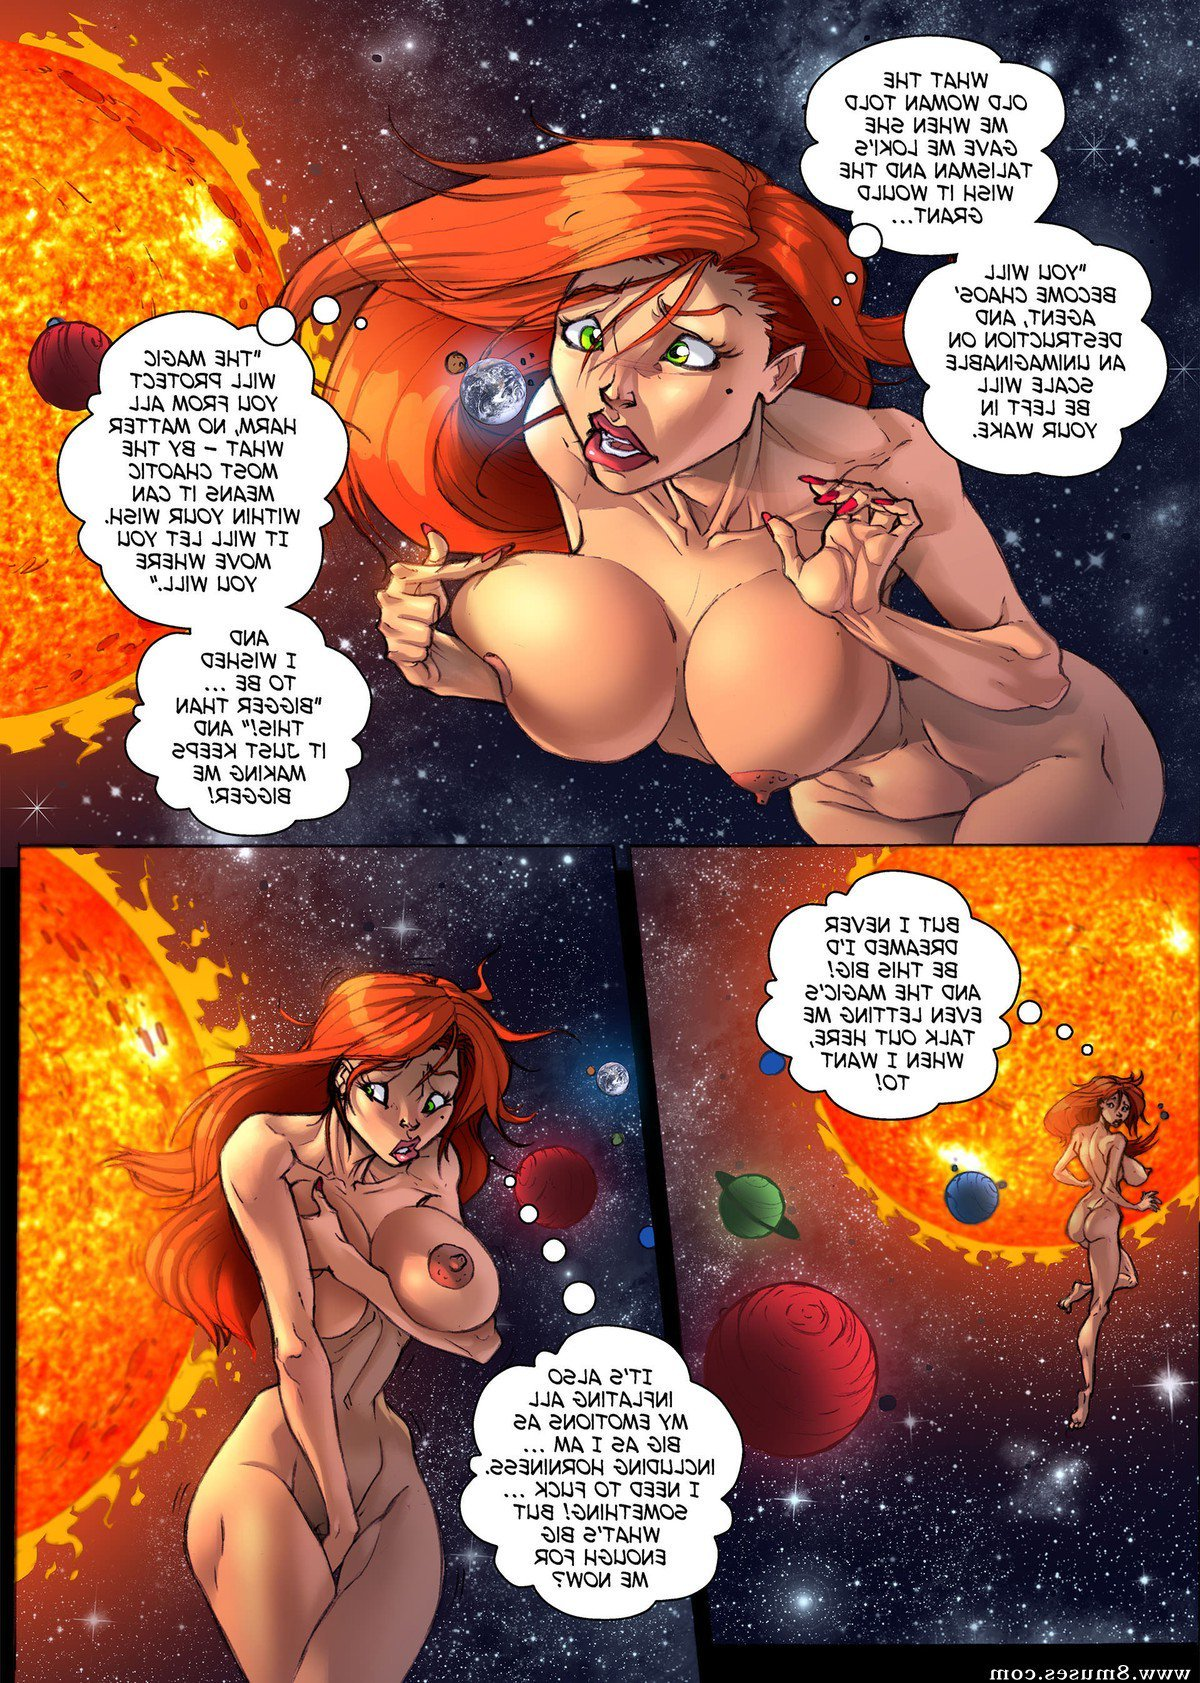 Giantess-Fan-Comics/Bigger-Than-This/Issue-2 Bigger_Than_This_-_Issue_2_3.jpg